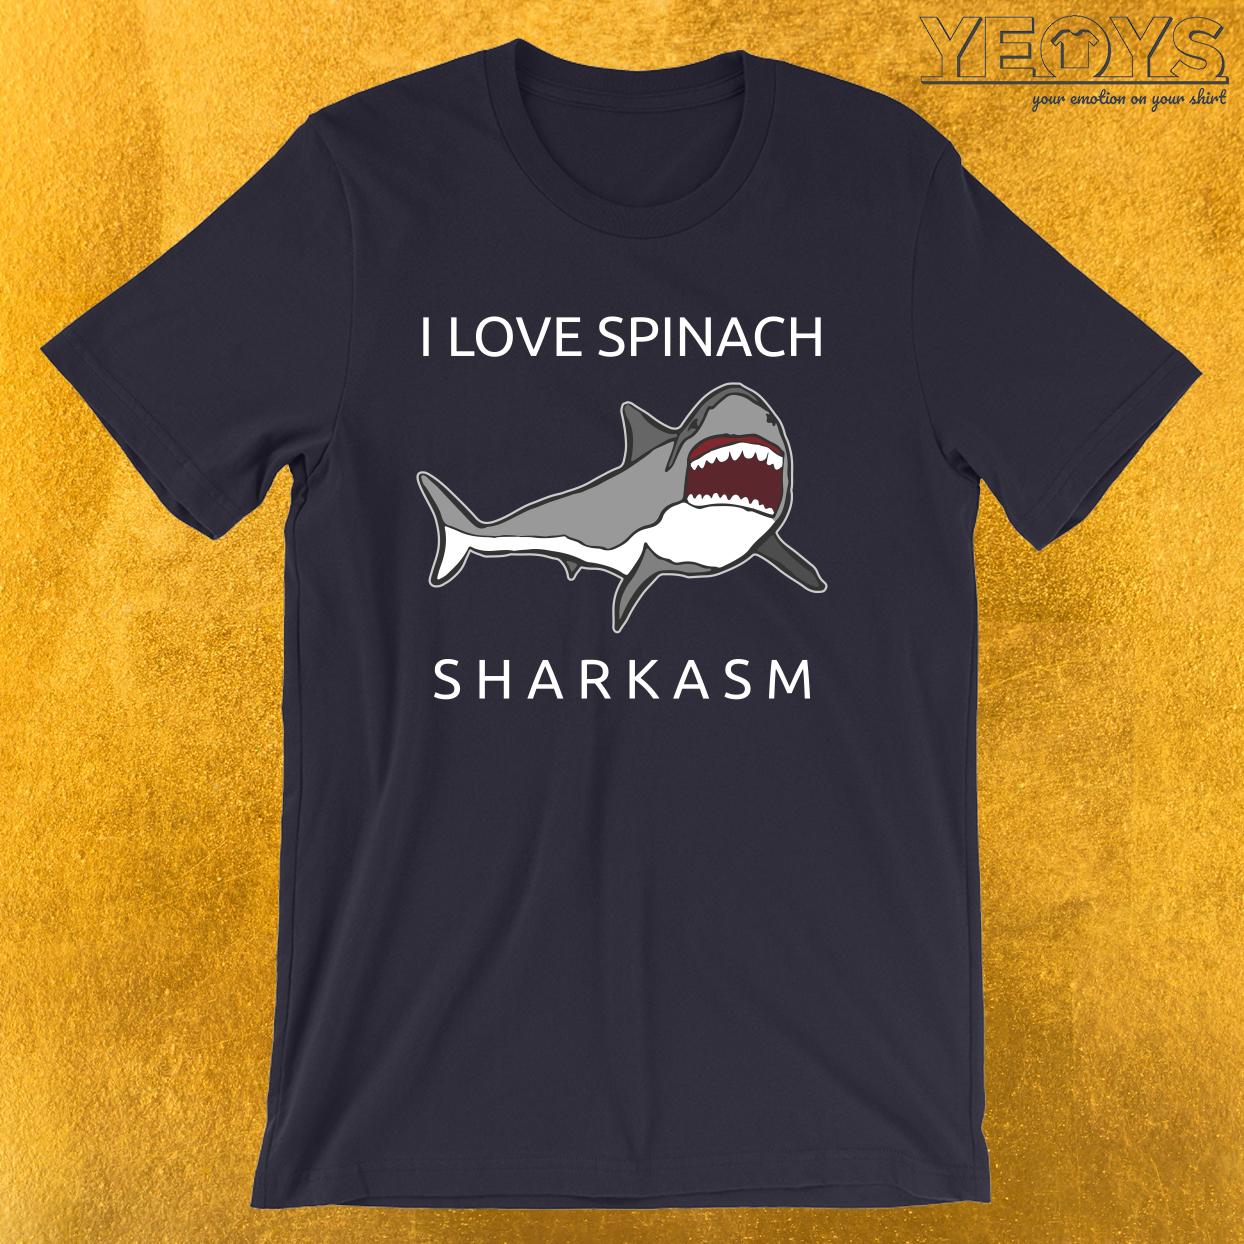 Funny Shark Pun – I Love Spinach Sharkasm Tee